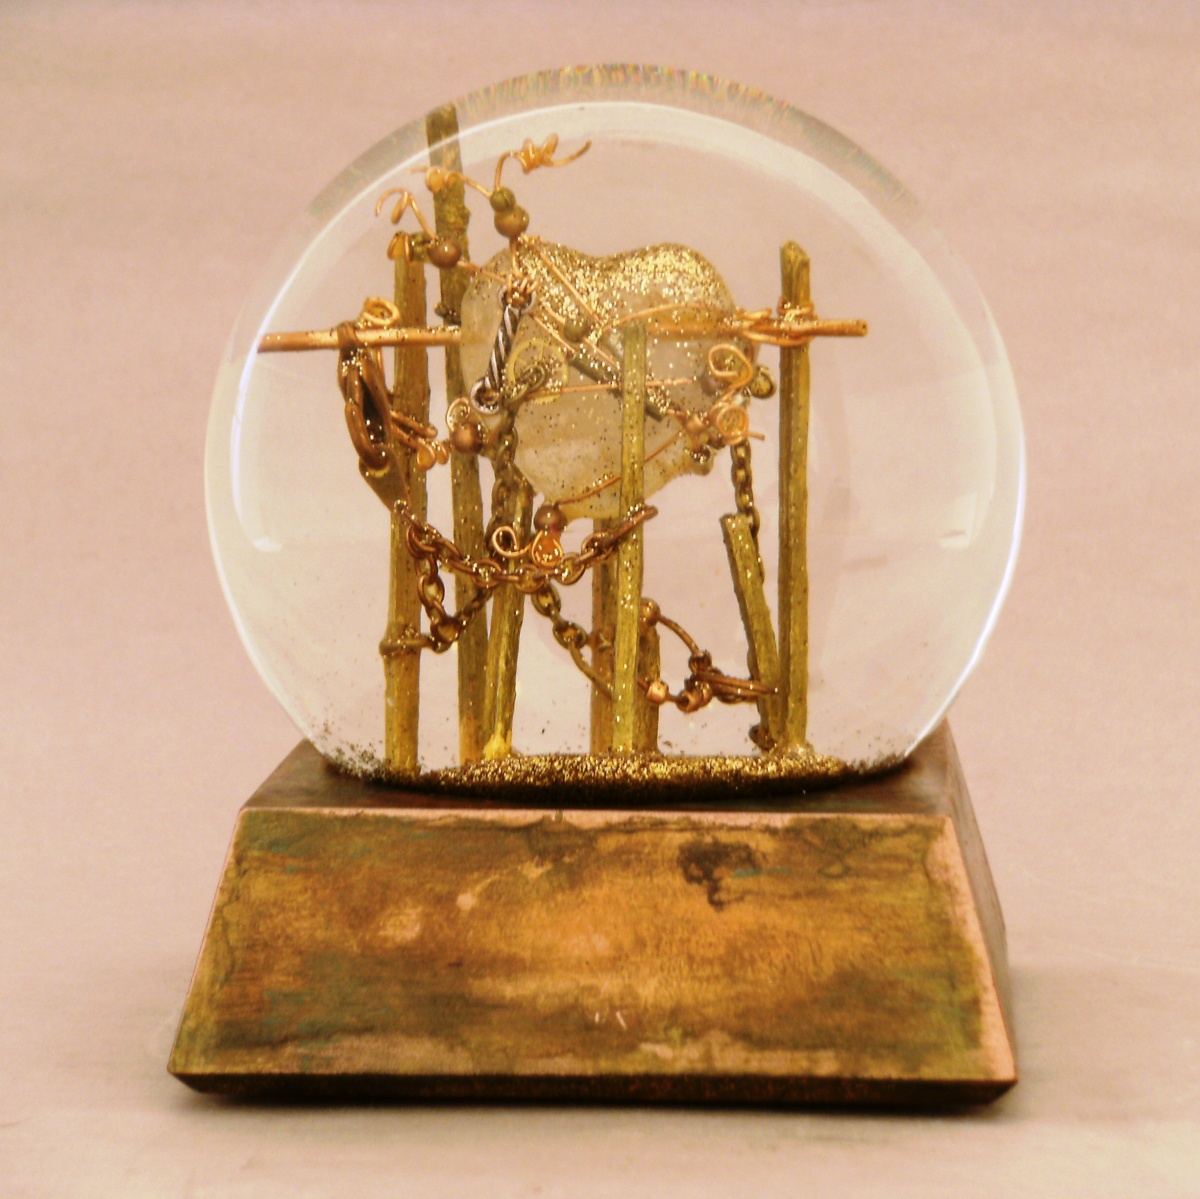 Mended Heart Snow Globe, Camryn Forrest Designs 2013